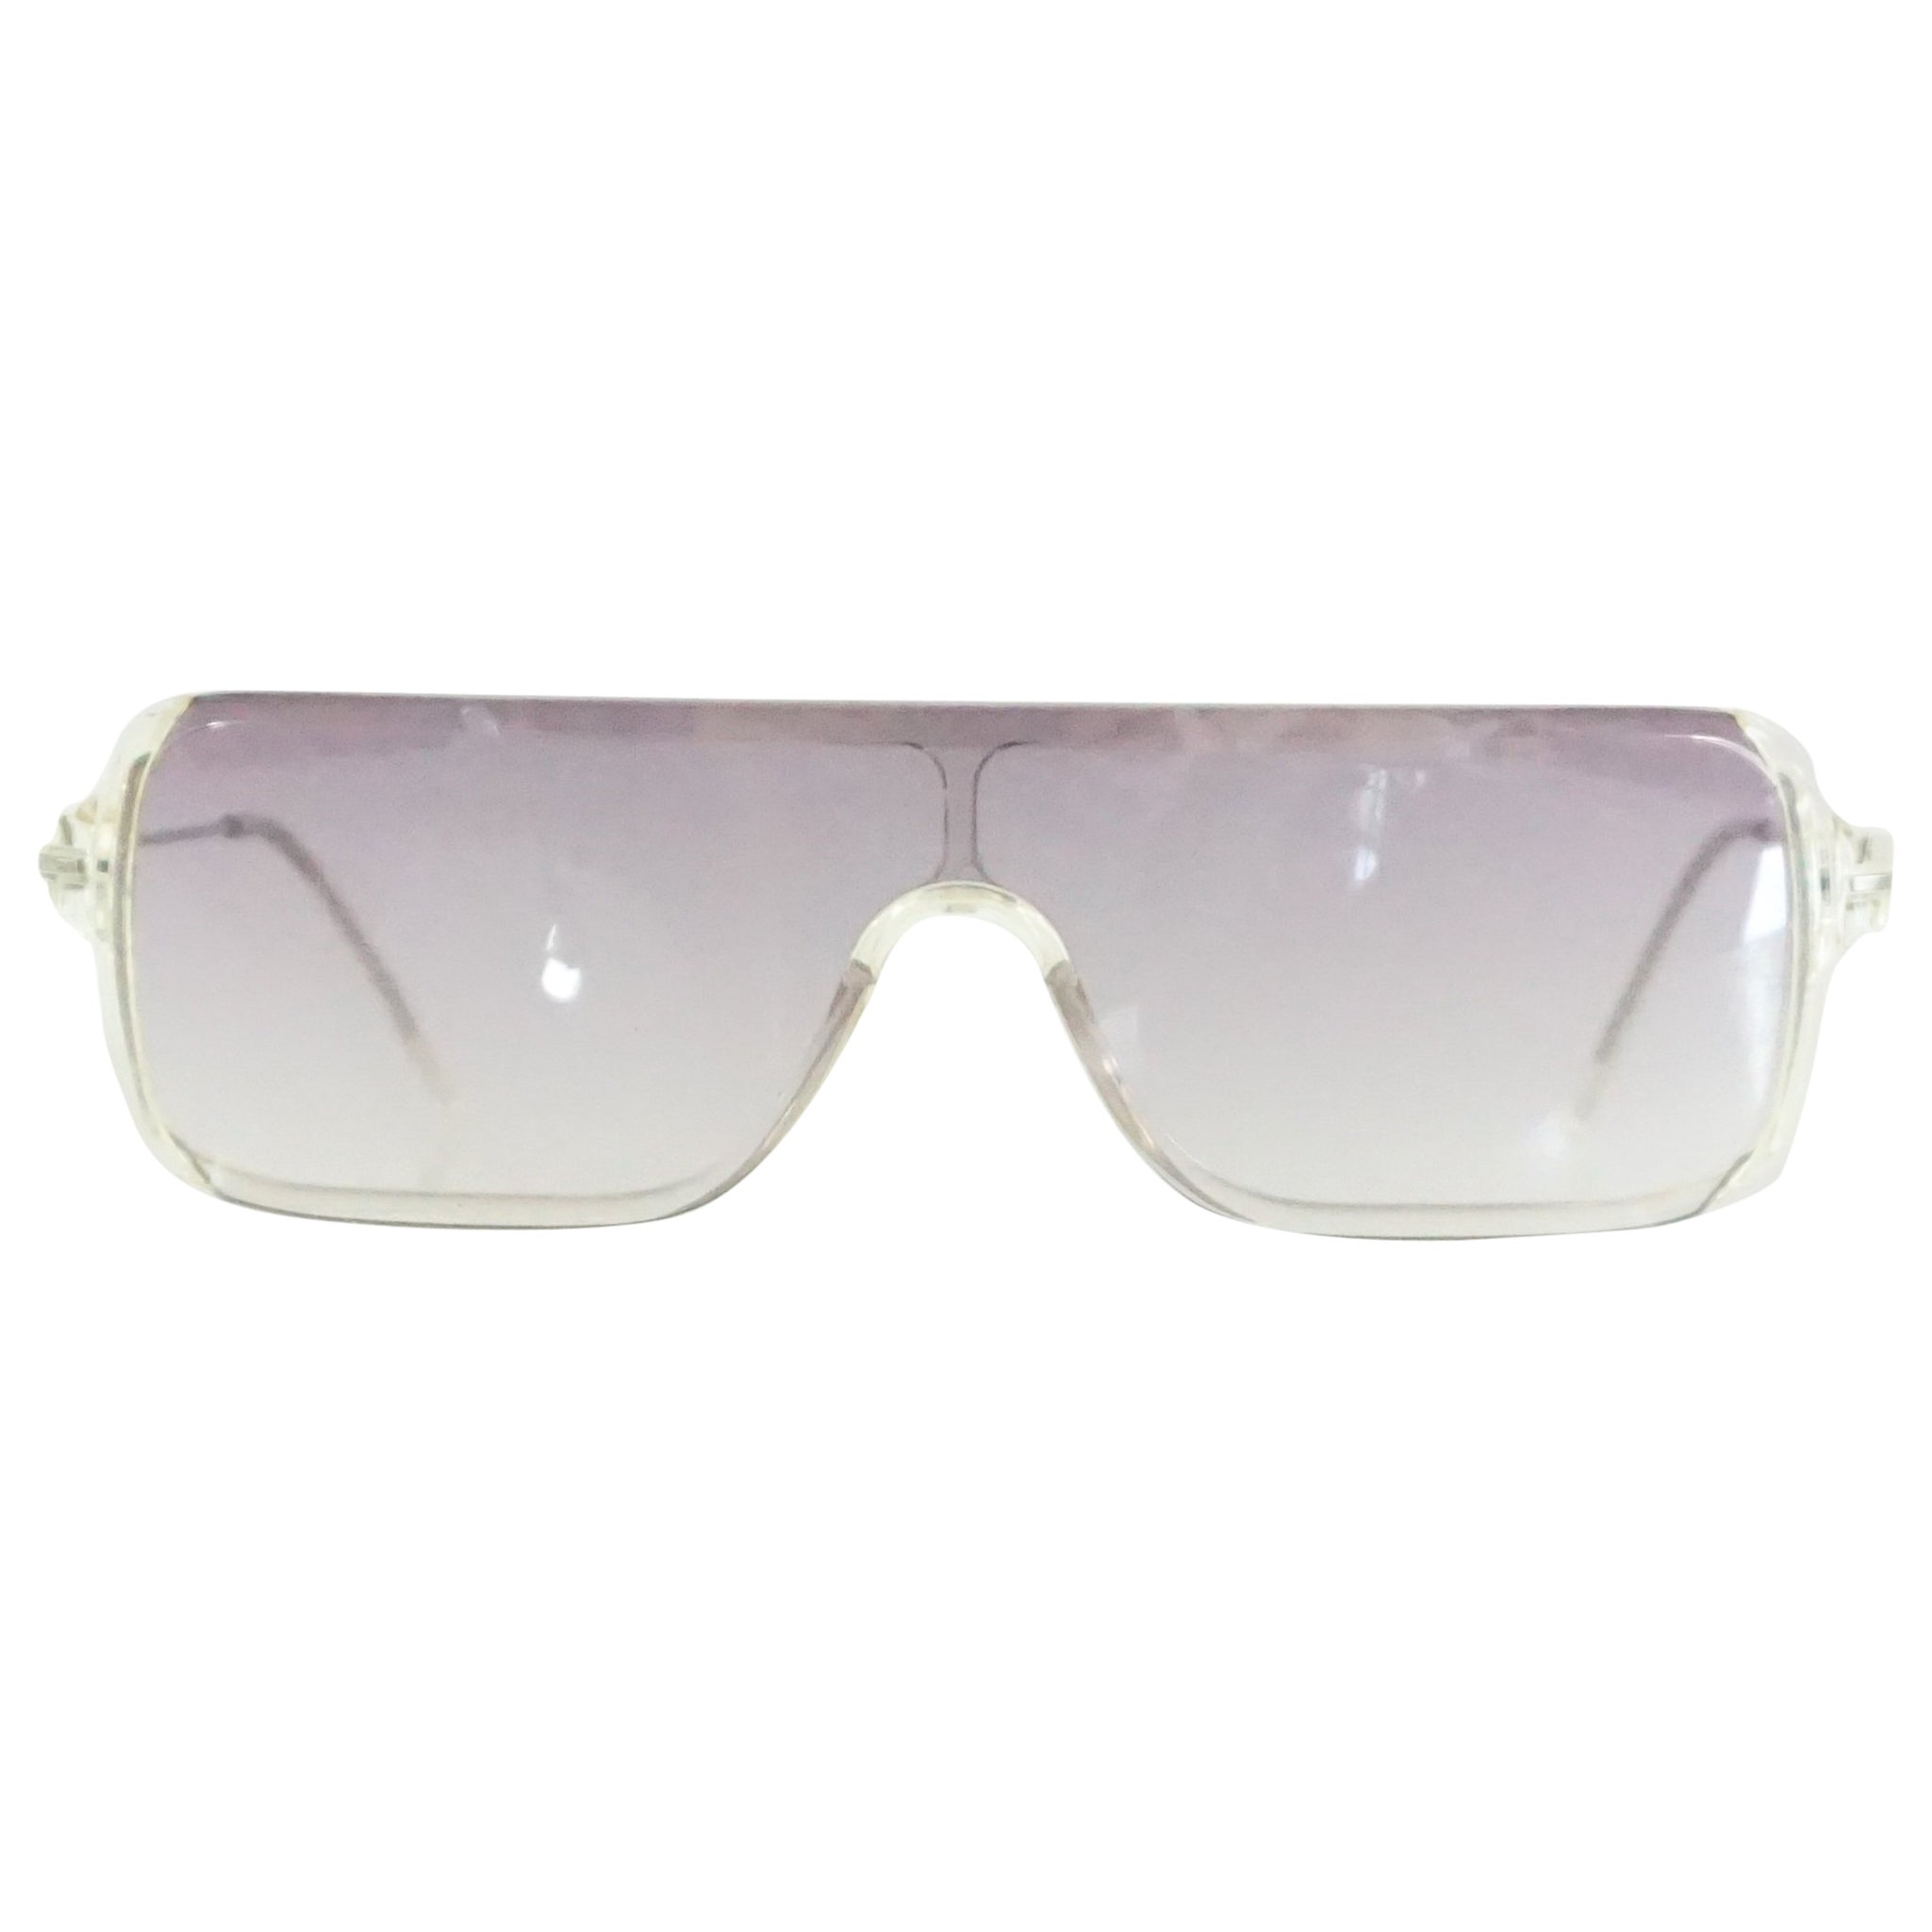 fdec4a0677ee Prada Clear Rectangular Sunglasses with Purple Tinted Lenses For Sale at  1stdibs